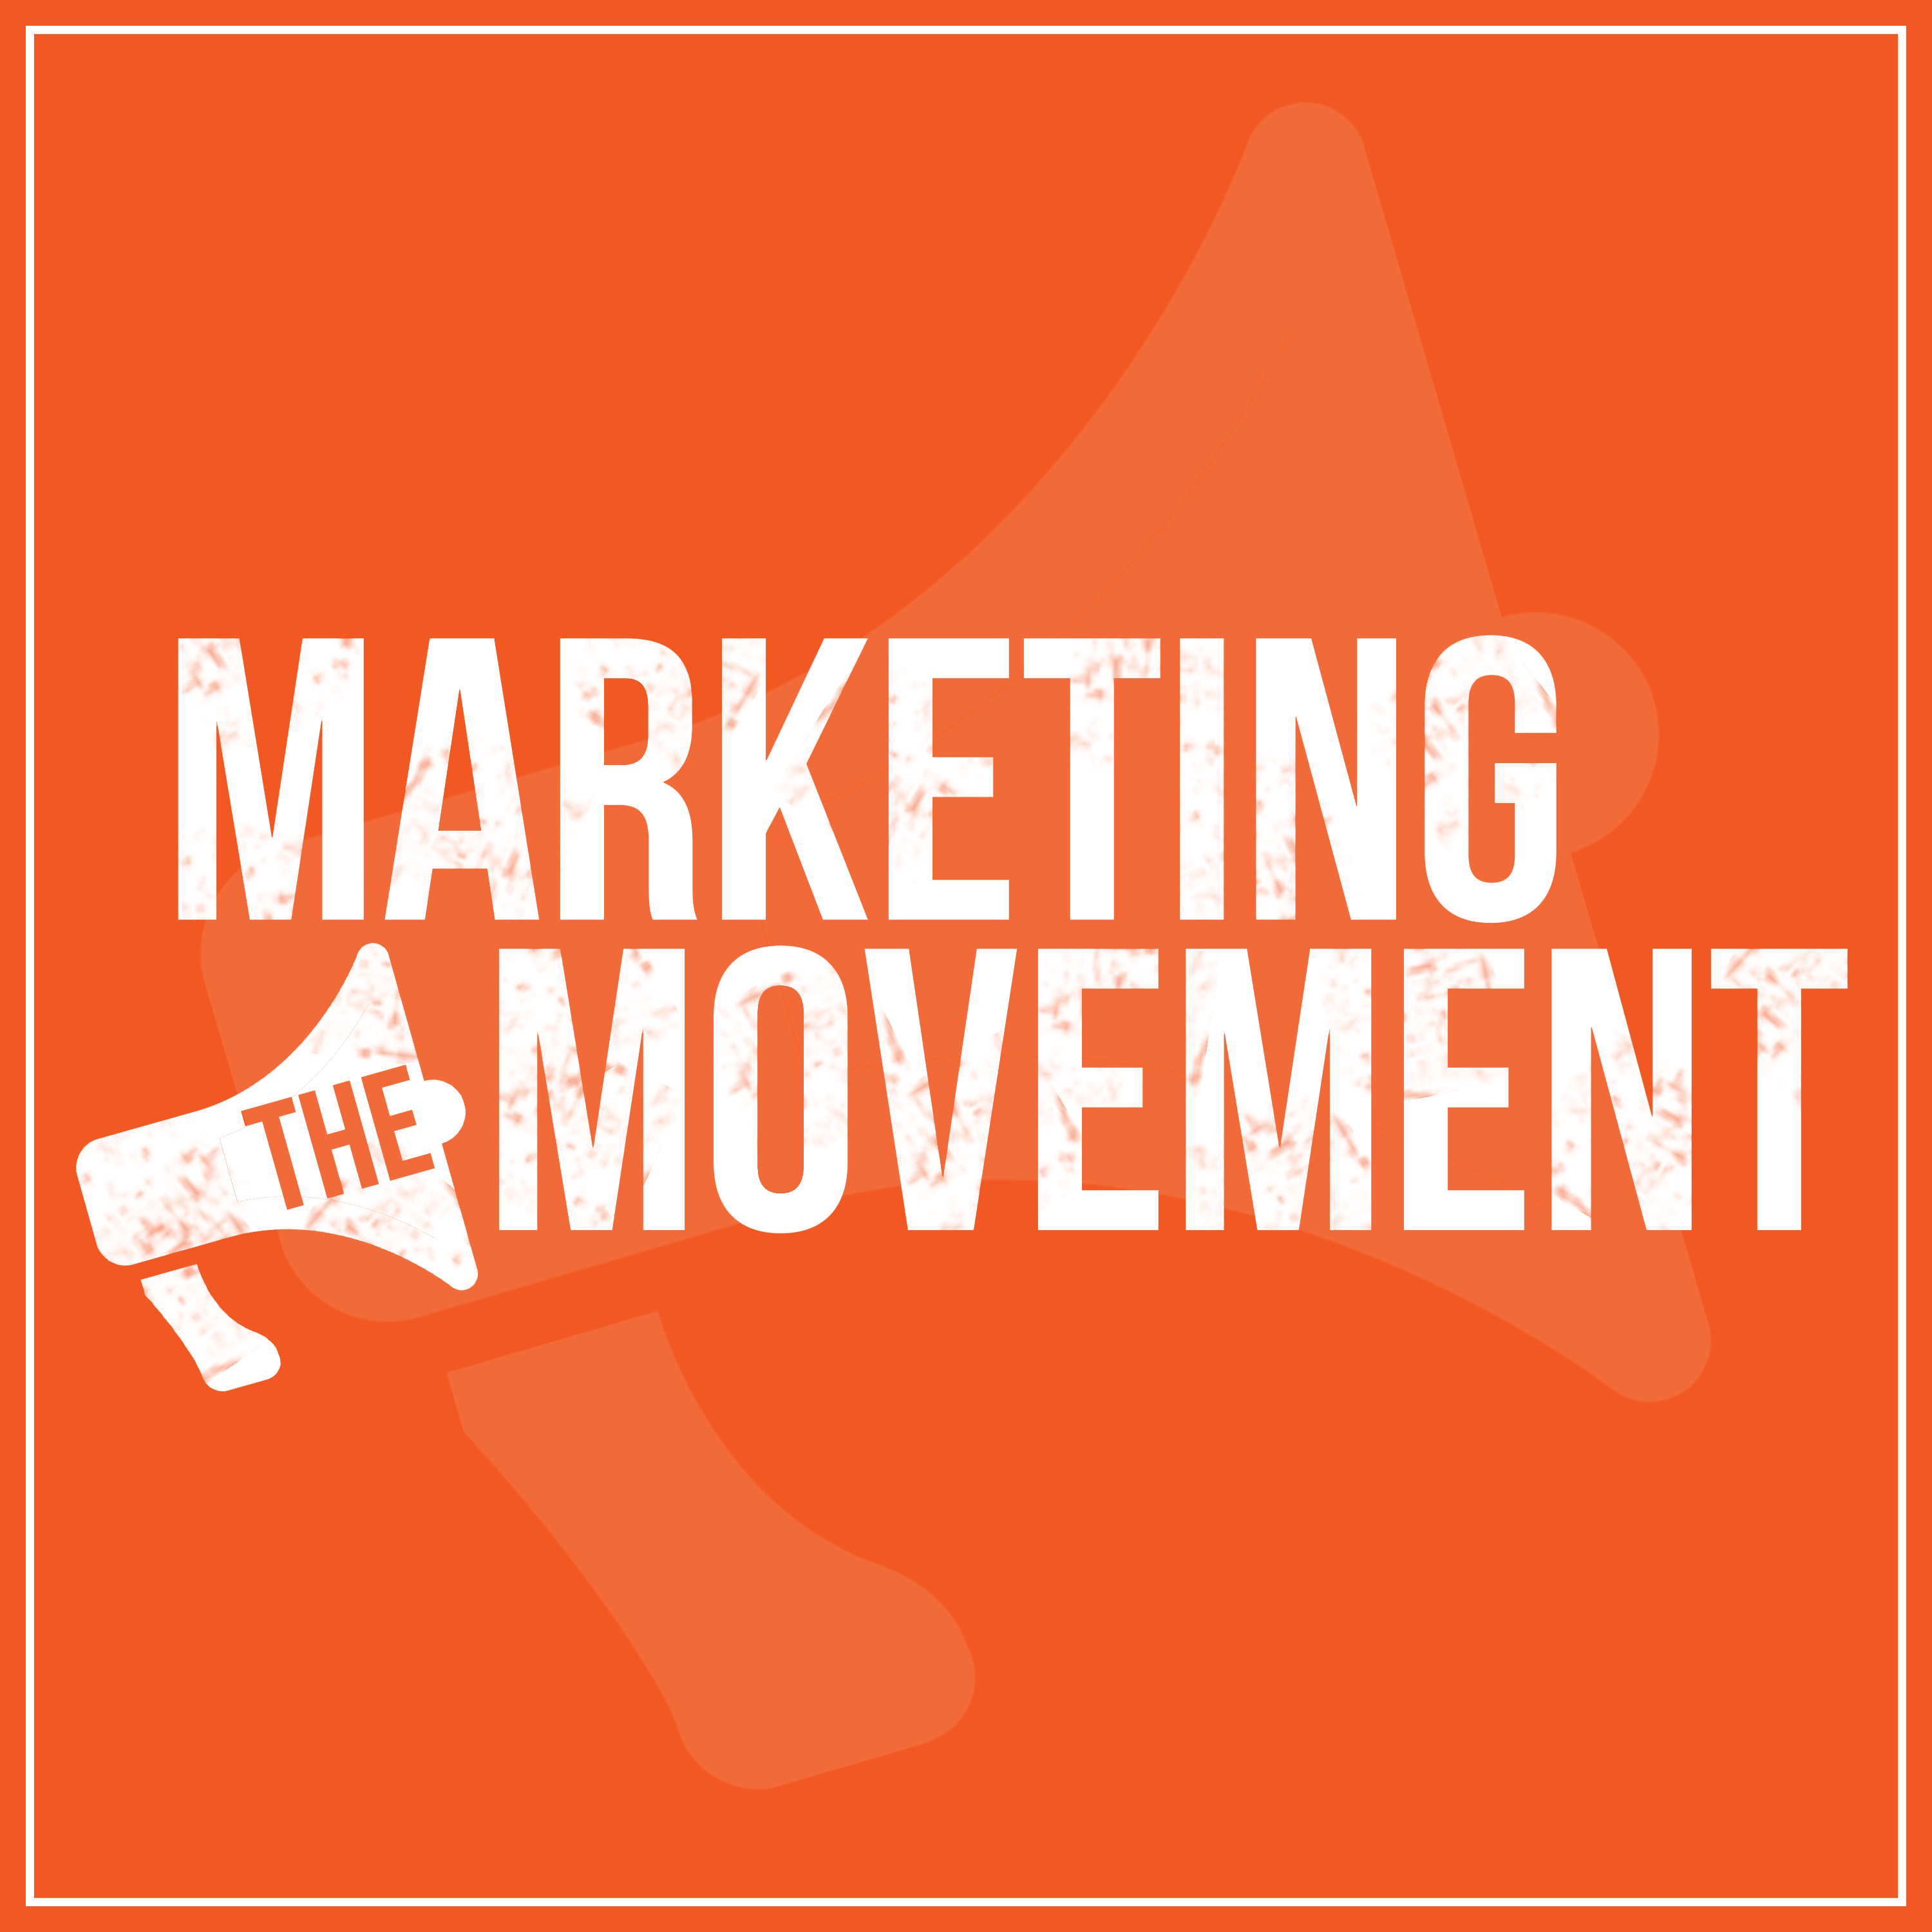 marketing the movement - podcast cover artwork